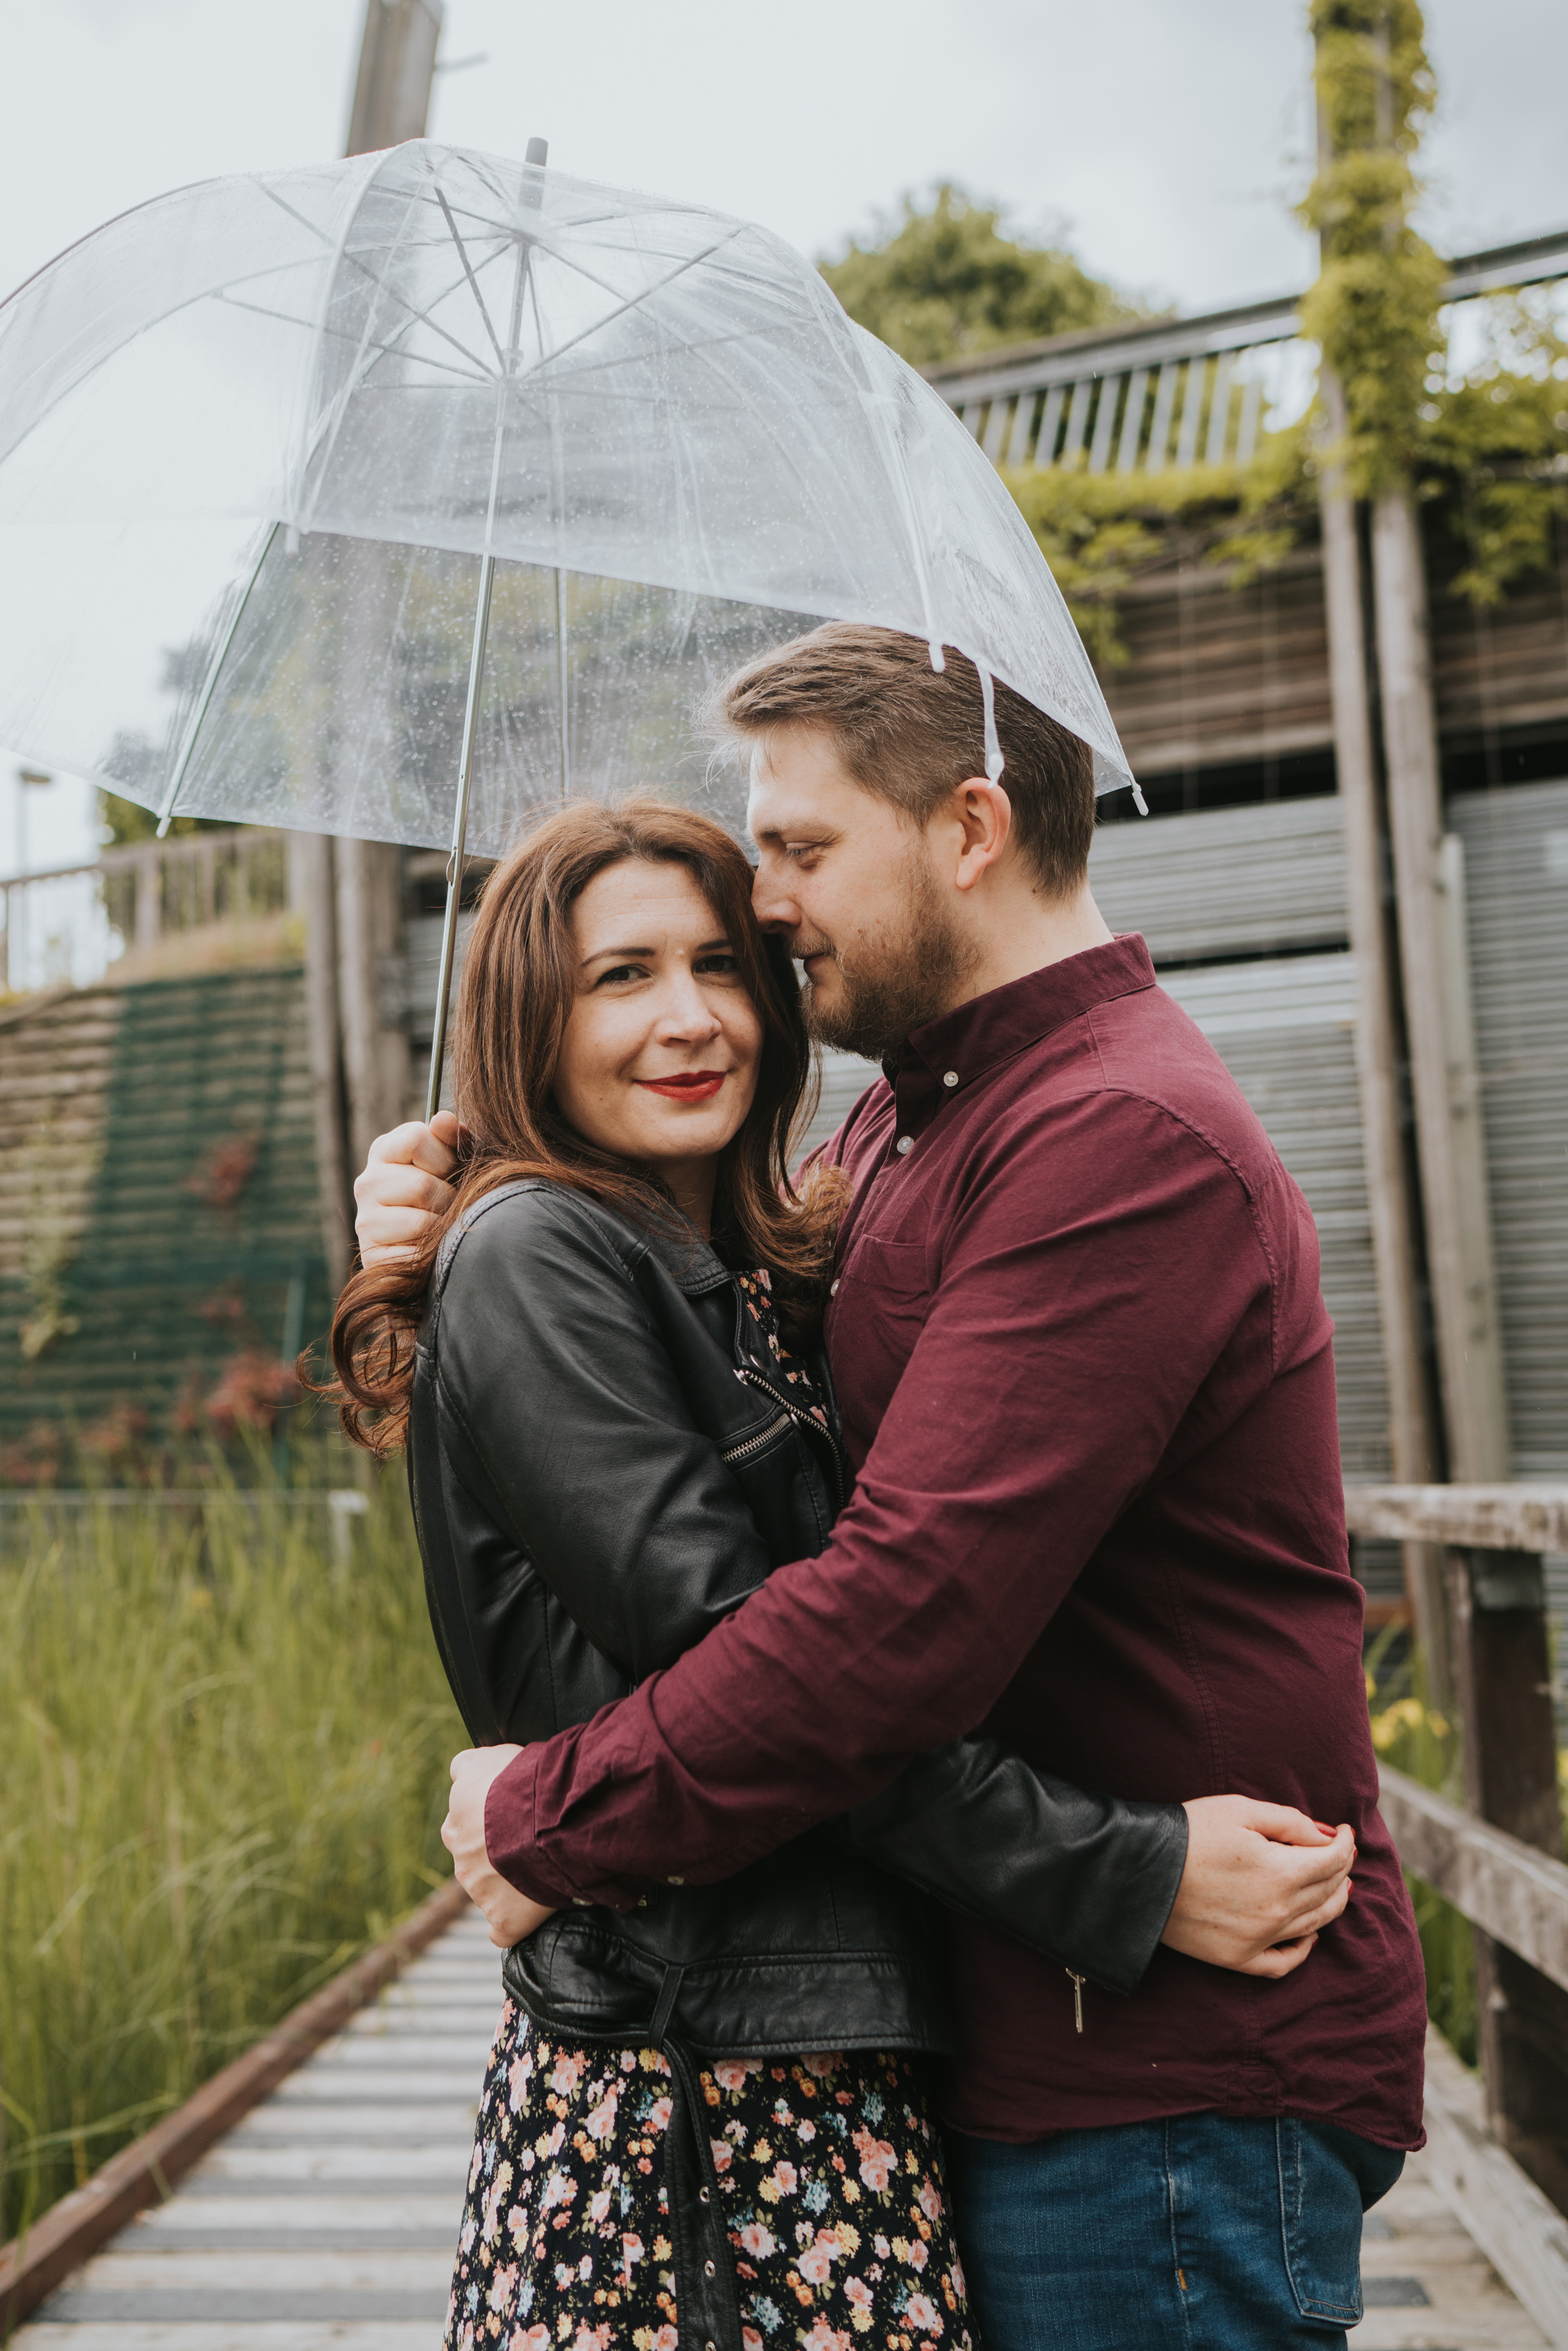 natalie-john-urban-london-engagement-grace-elizabeth-colchester-essex-alternative-wedding-photographer-essex-suffolk-norfolk-devon (26 of 66).jpg